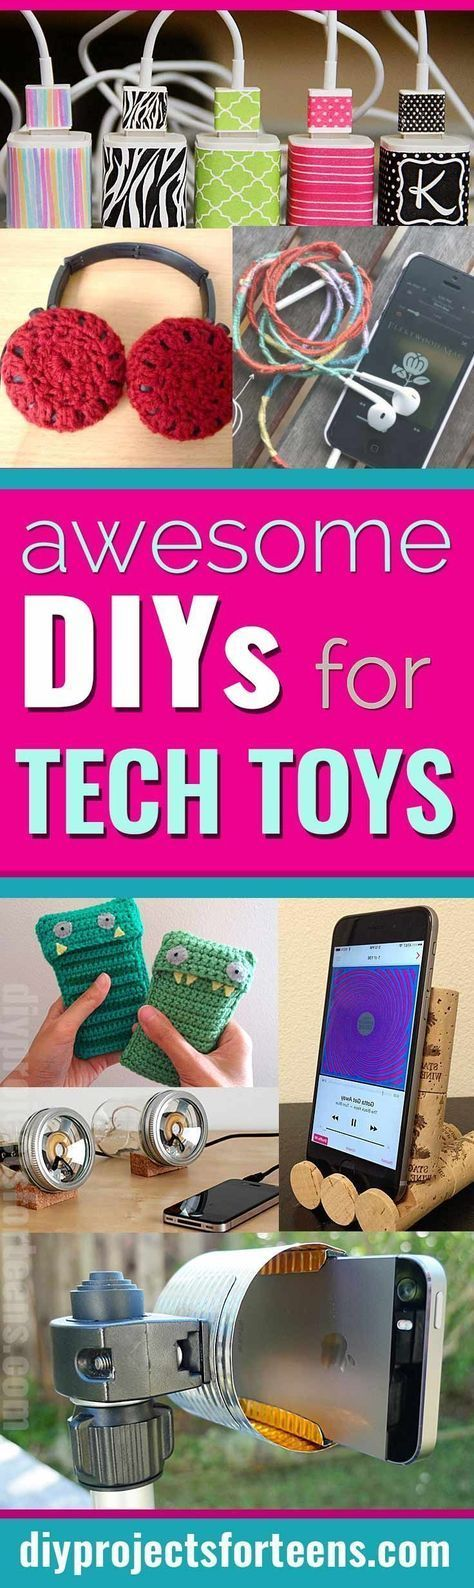 Cool DIY Ideas for Your iPhone iPad Tablets & Phones   Fun Projects for Chargers, Cases and Headphones   http://diyprojectsforteens.com/diy-projects-iphone-ipad-phone/